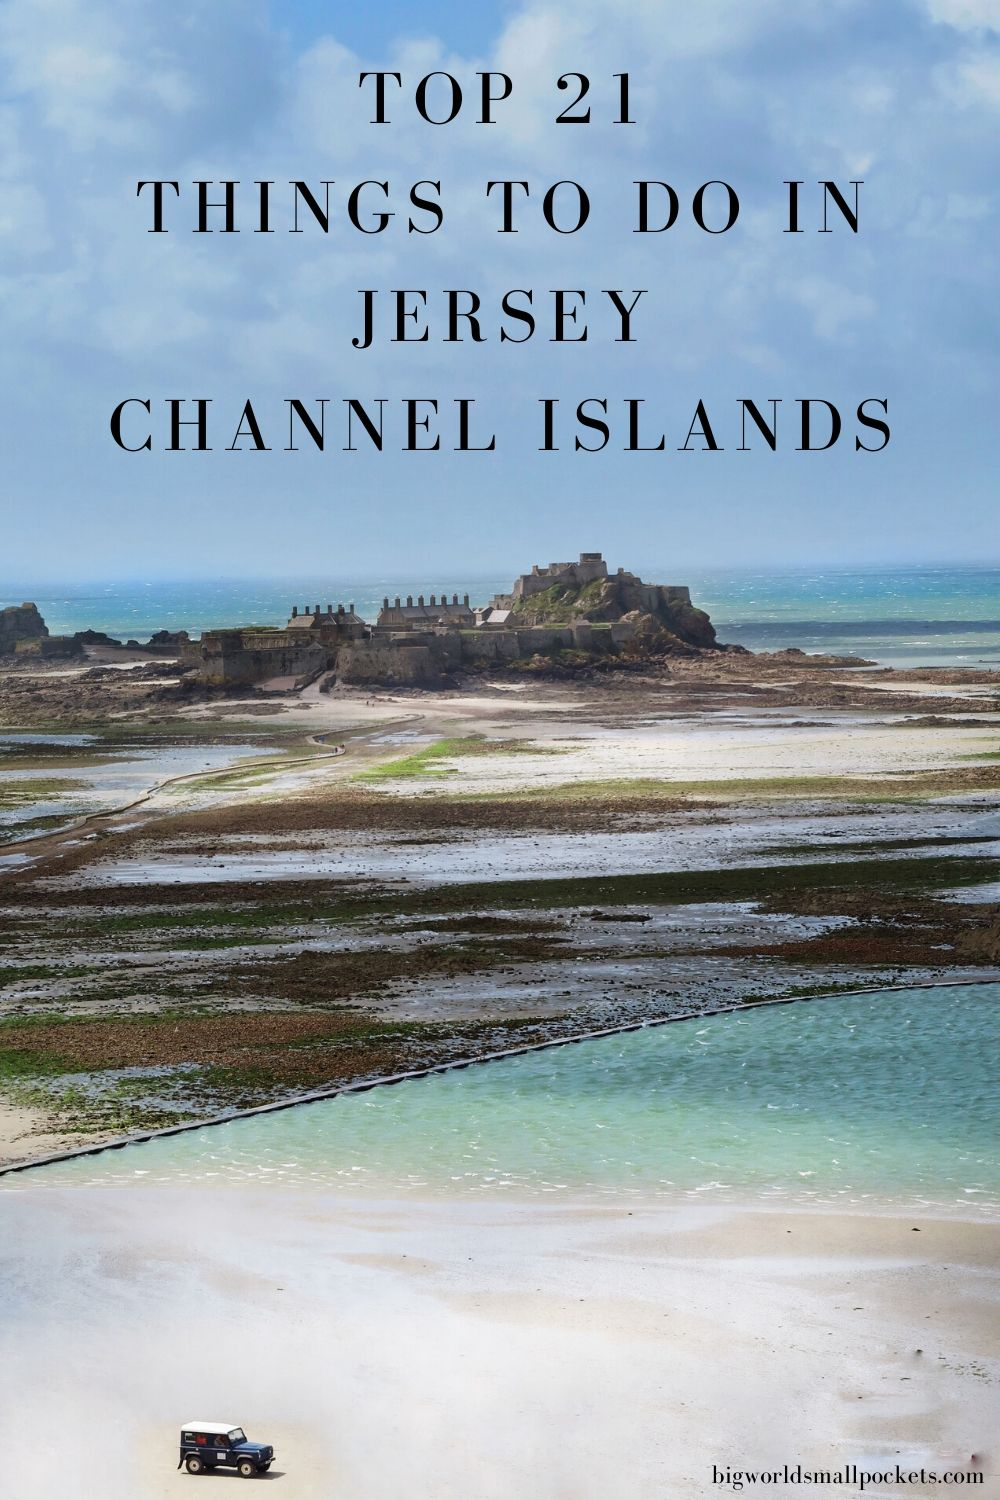 Top 21 Things to Do in Jersey, Channel Islands